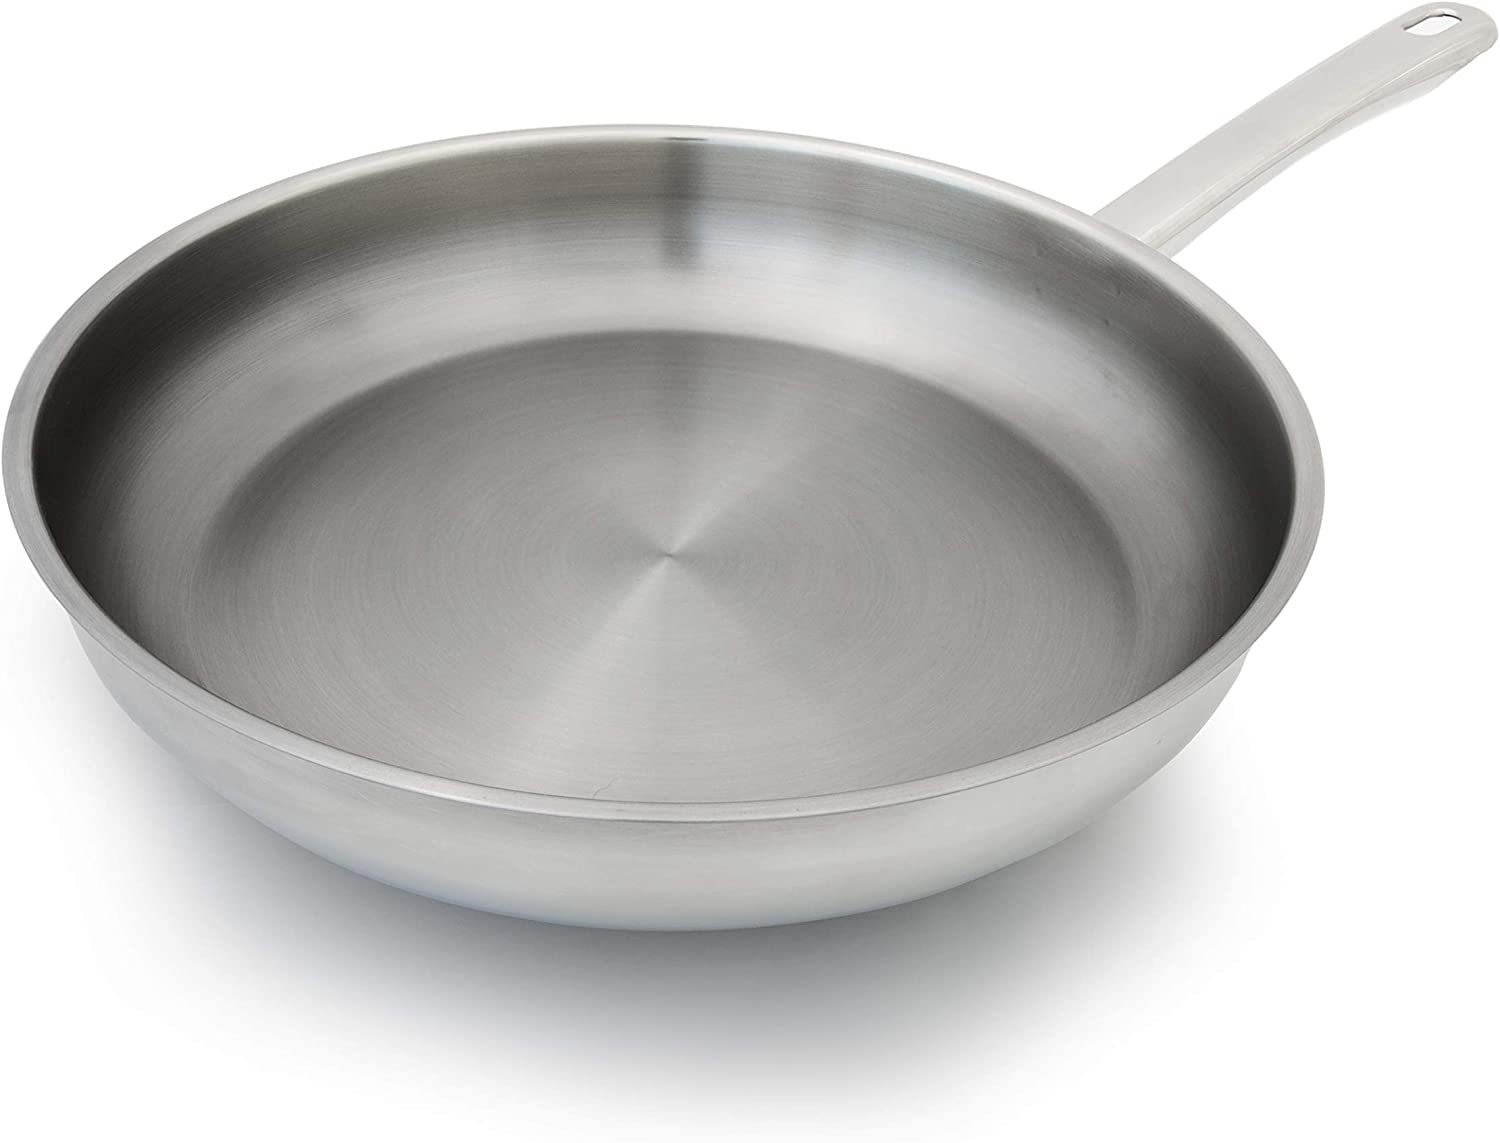 Hutch Kitchen | No Rivet Stainless Steel Skillet / Frying Pan | Durable 18/10 Stainless Steel | 9.5 Inch Pan| 3-PlyBonded | Induction-Friendly | Welded Cool To Touch Handle